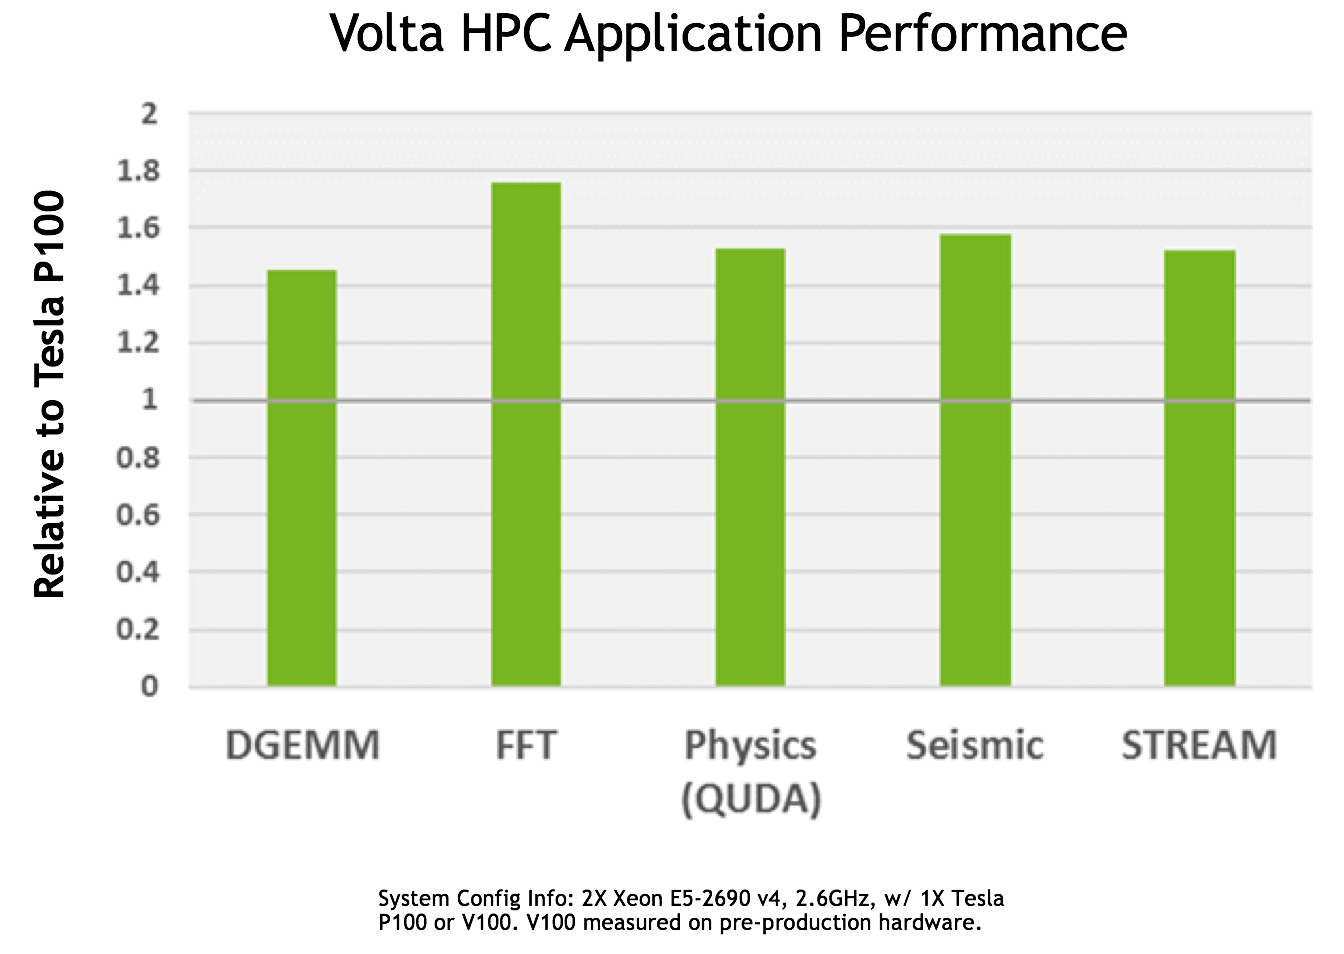 Figure 3: Tesla V100 performs 1.5x faster than Tesla P100 on average for a variety of HPC workloads. (Measured on pre-production Tesla V100.)